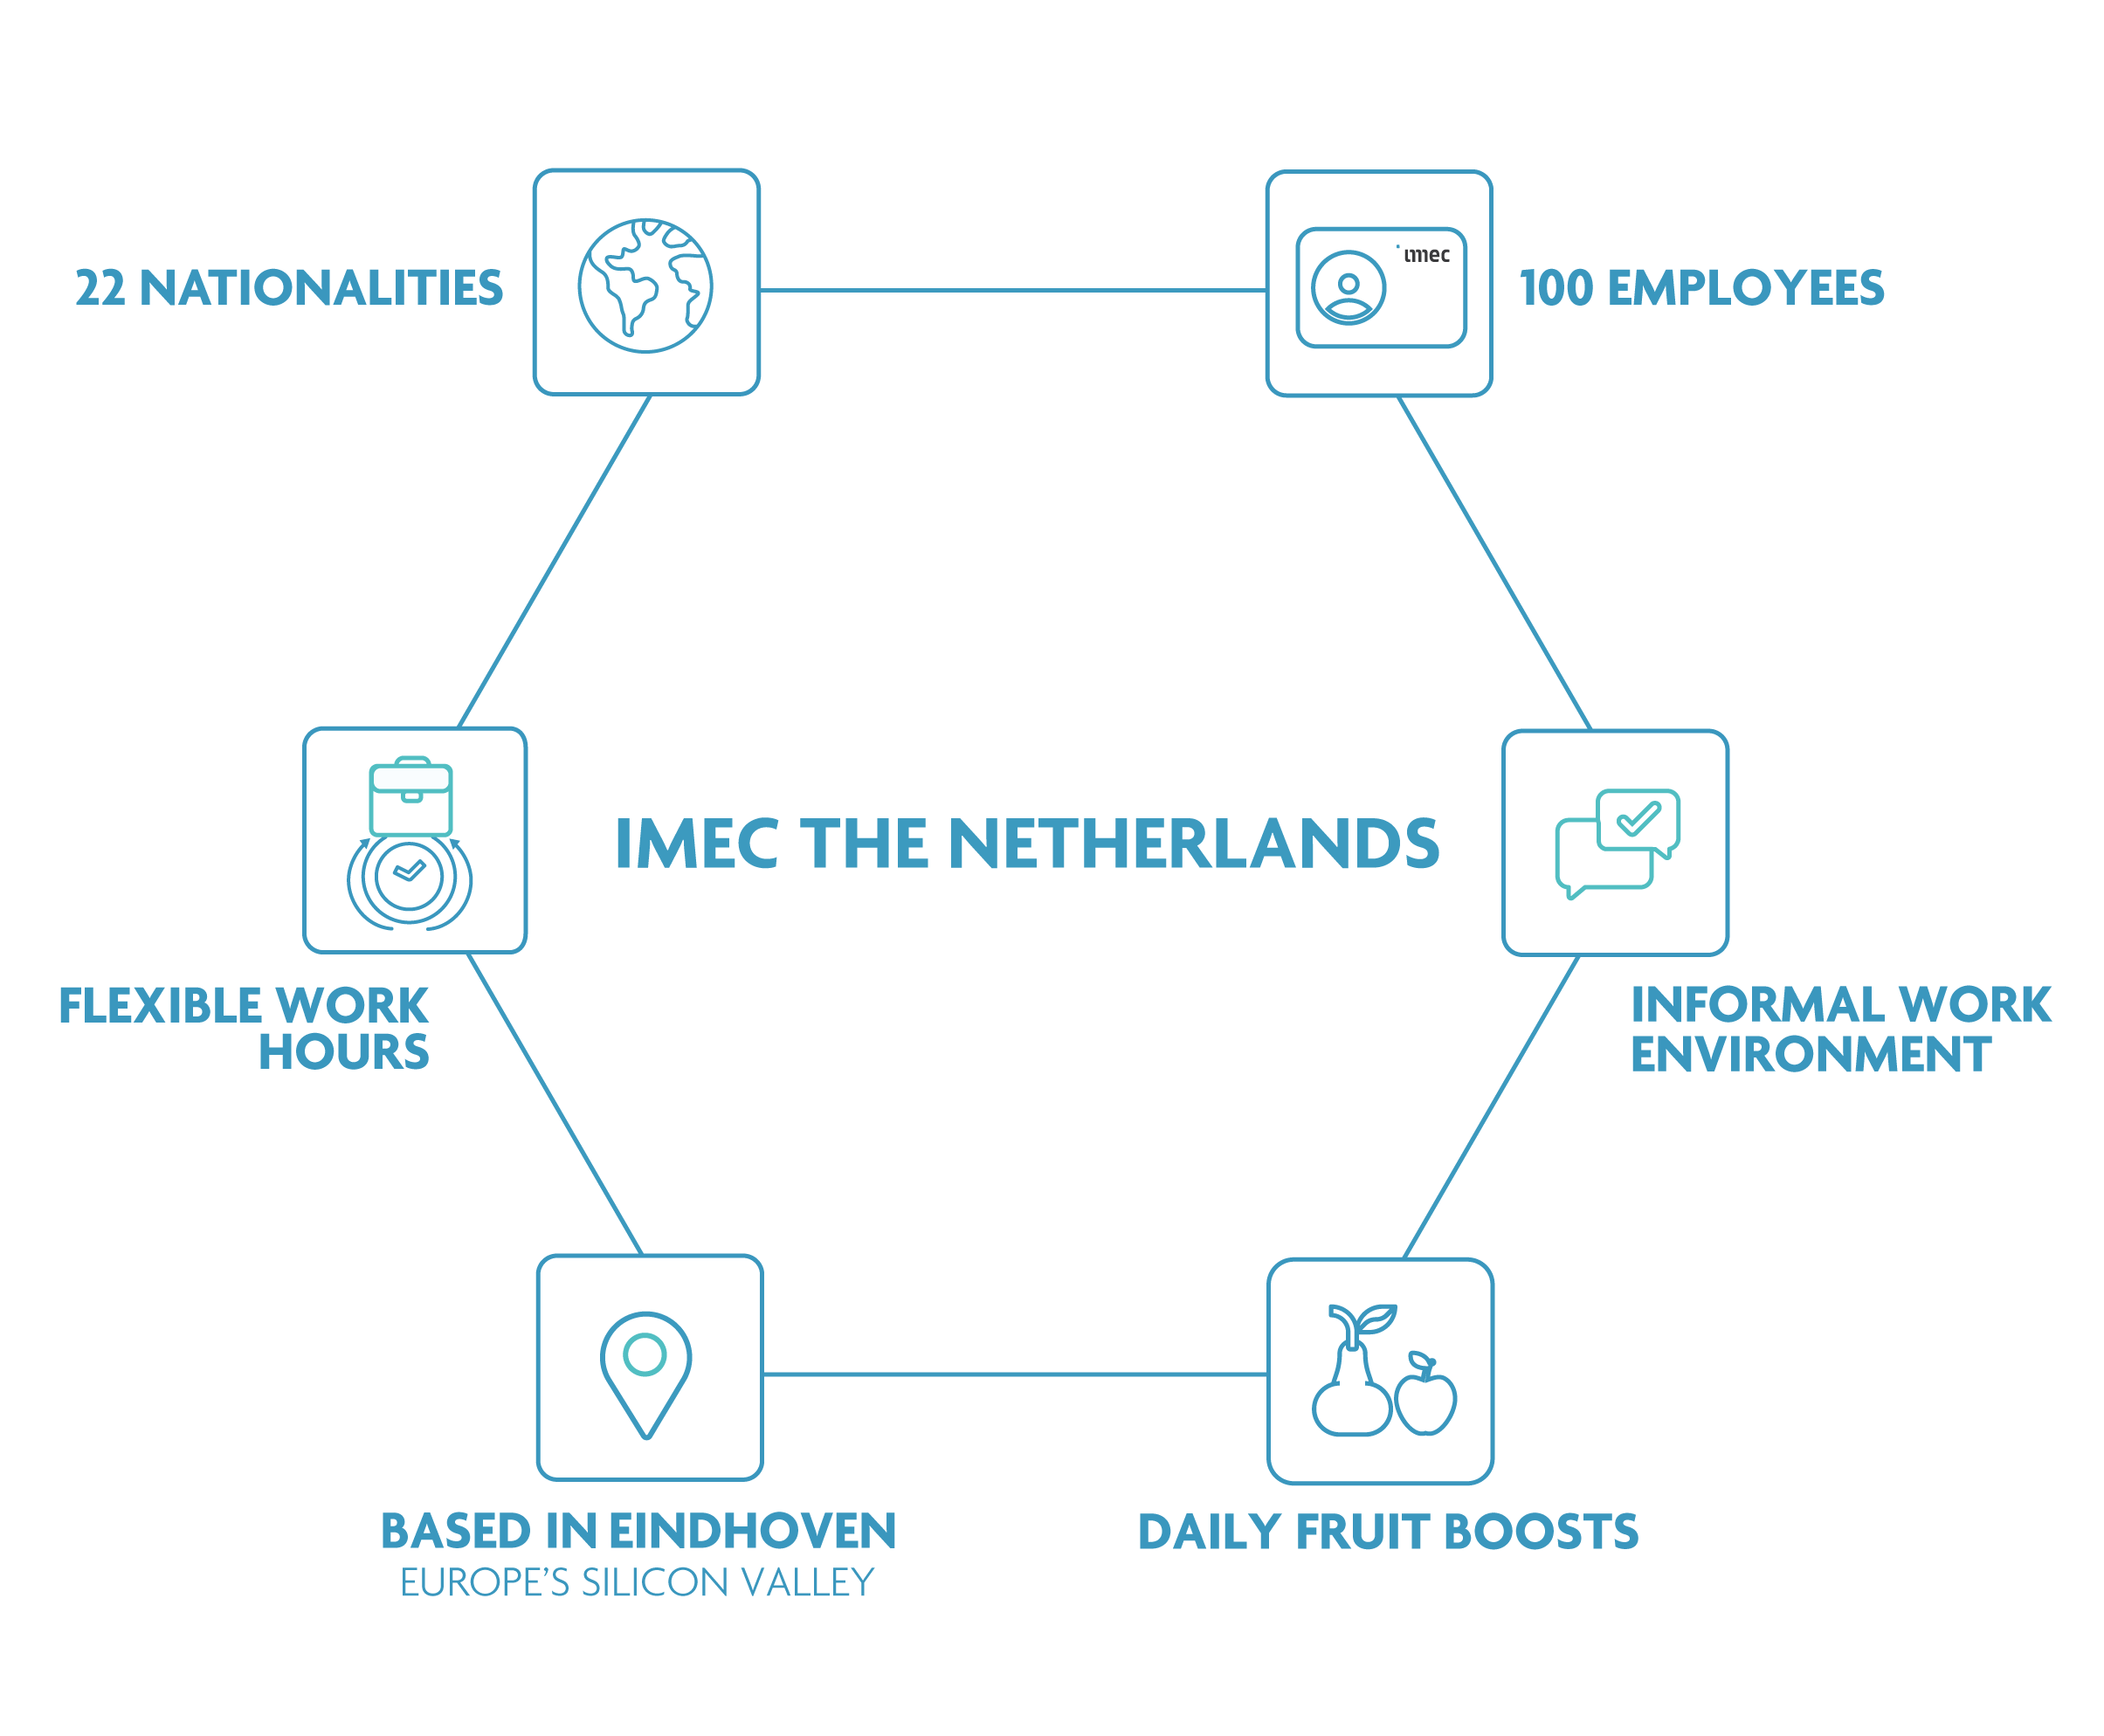 imec infographic The Netherlands